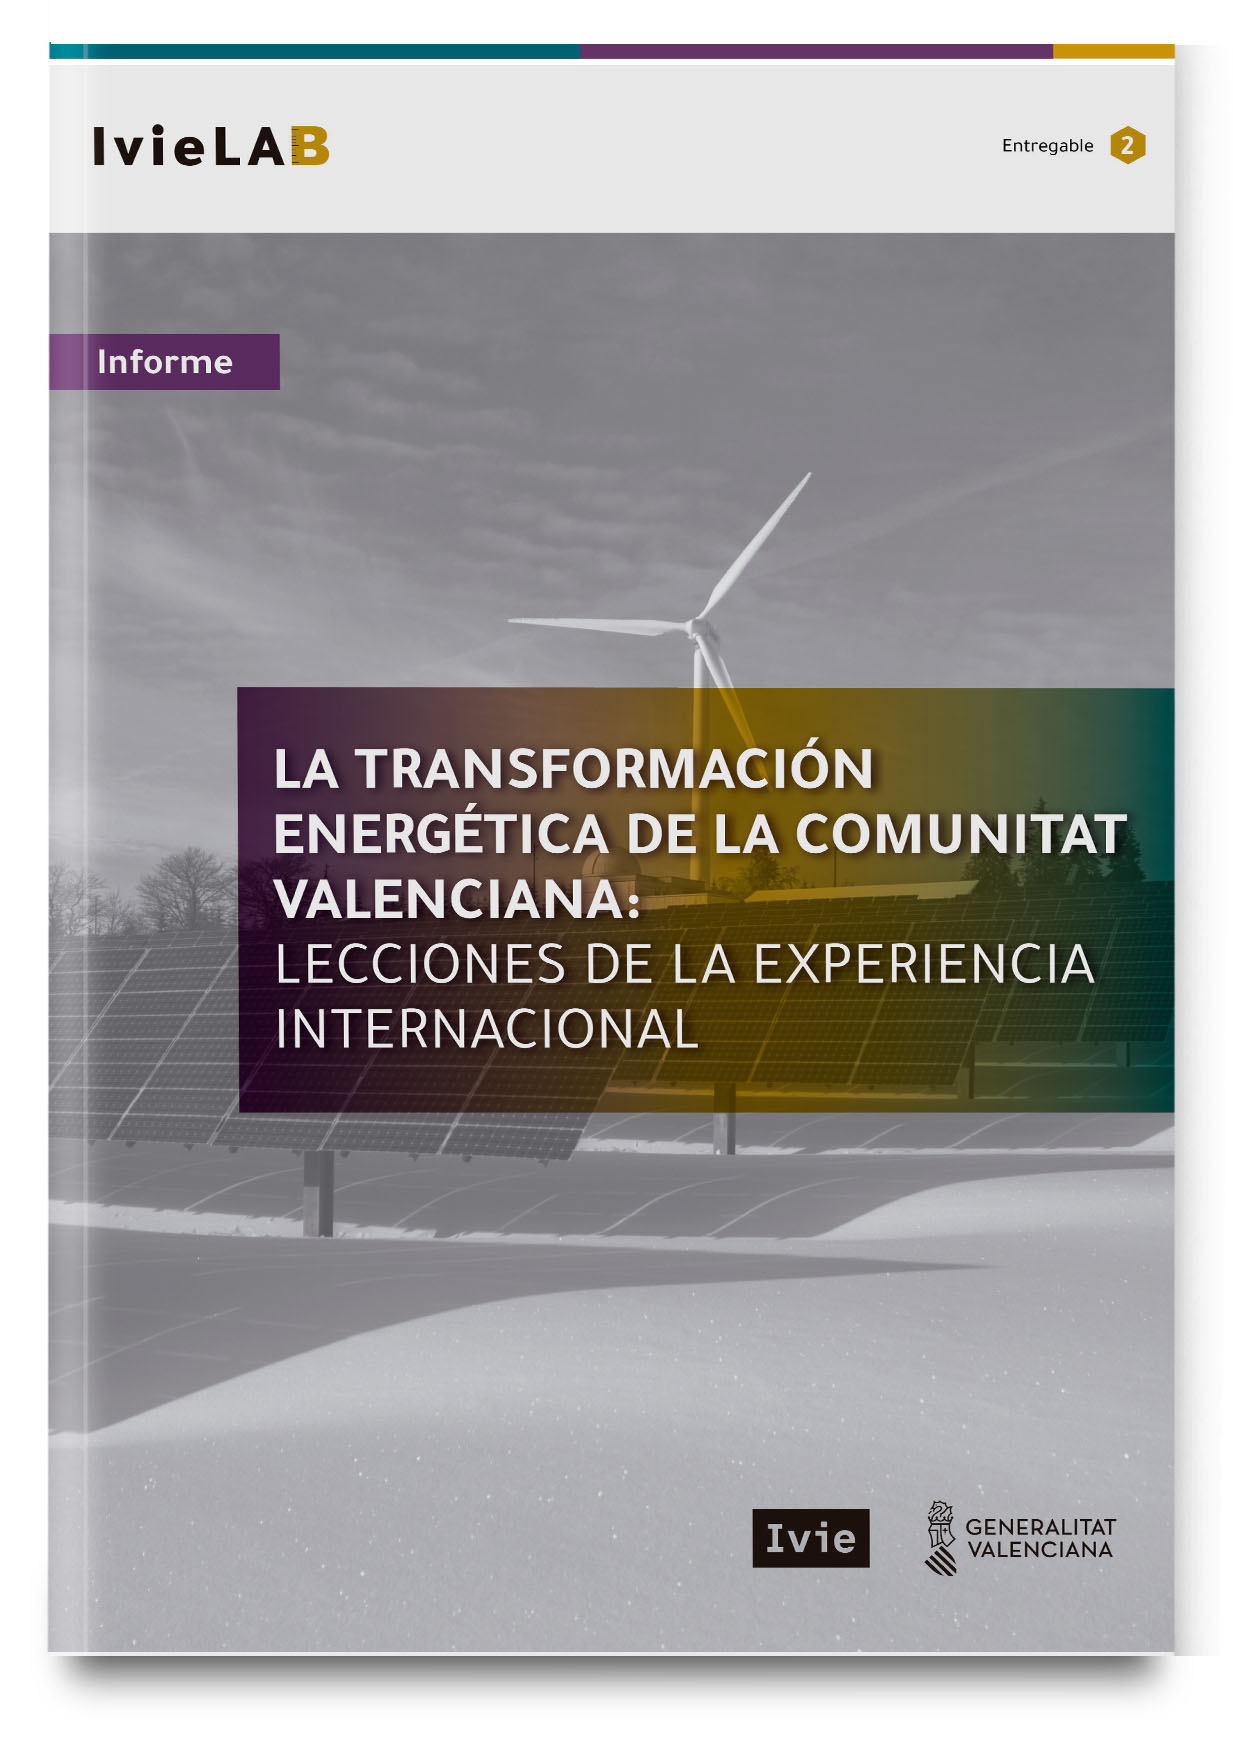 IvieLAB. Energy conversion in the Valencian Community. Lessons from international experience